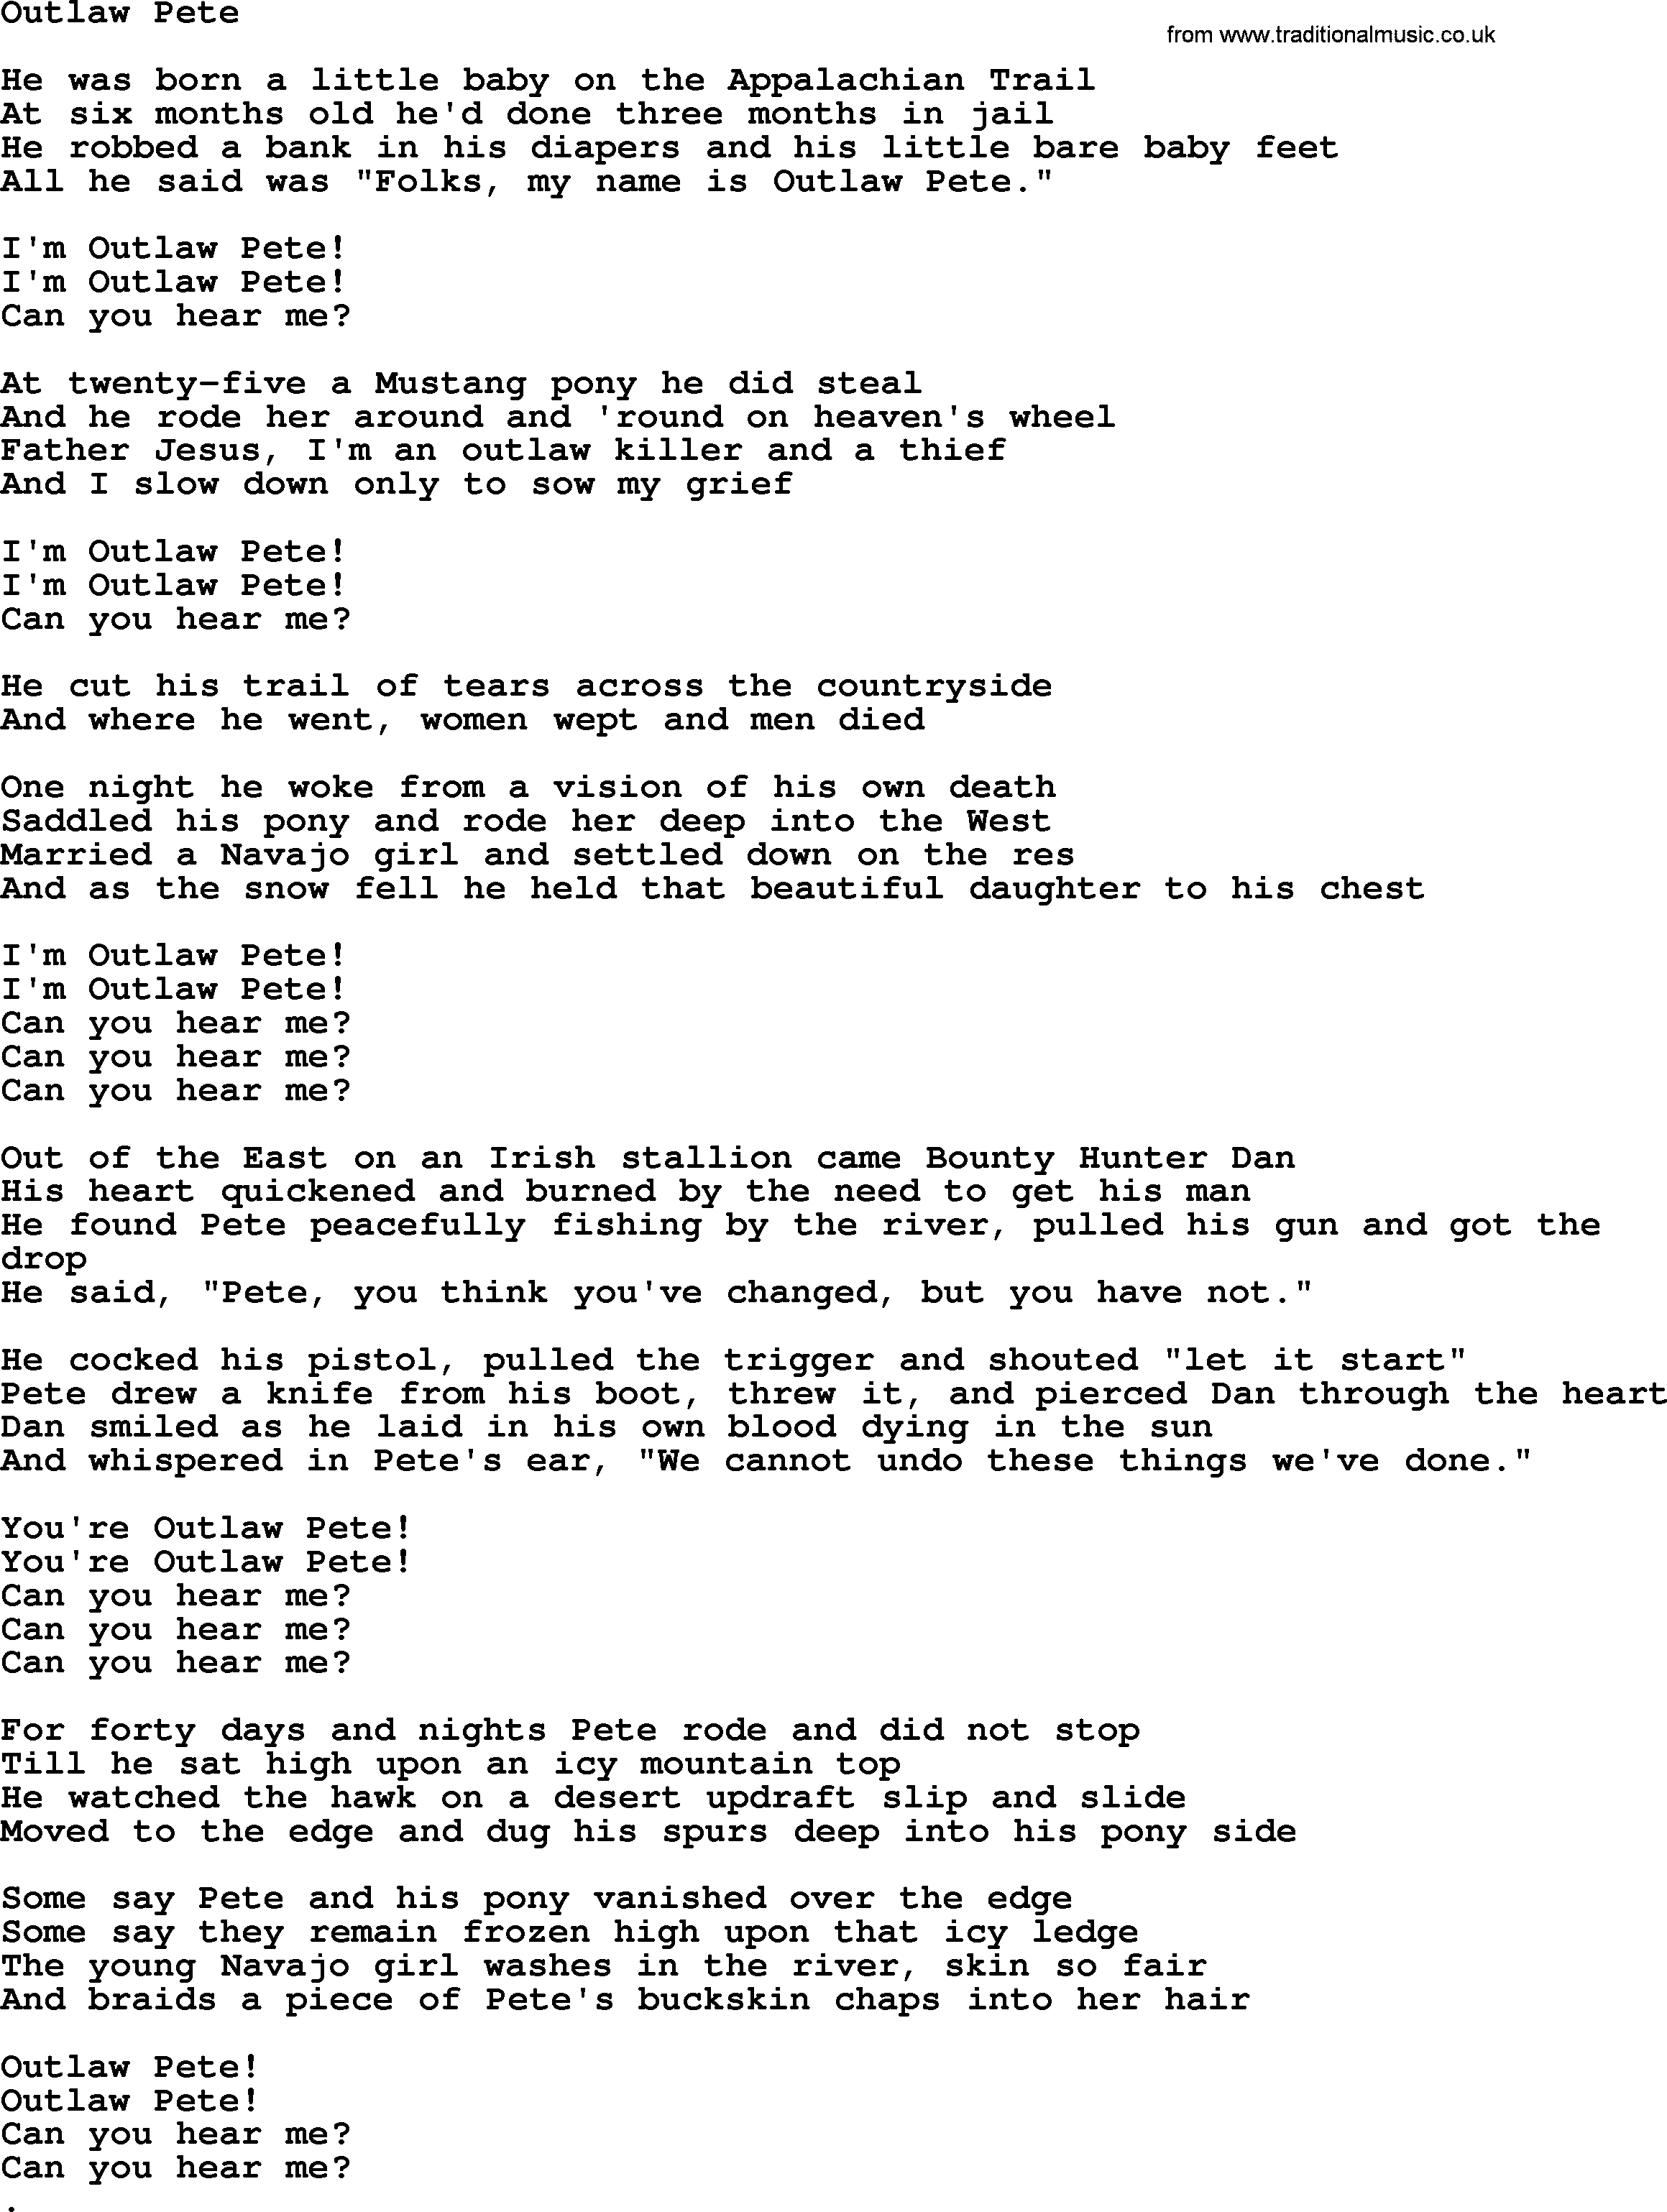 Bruce Springsteen Song Outlaw Pete Lyrics